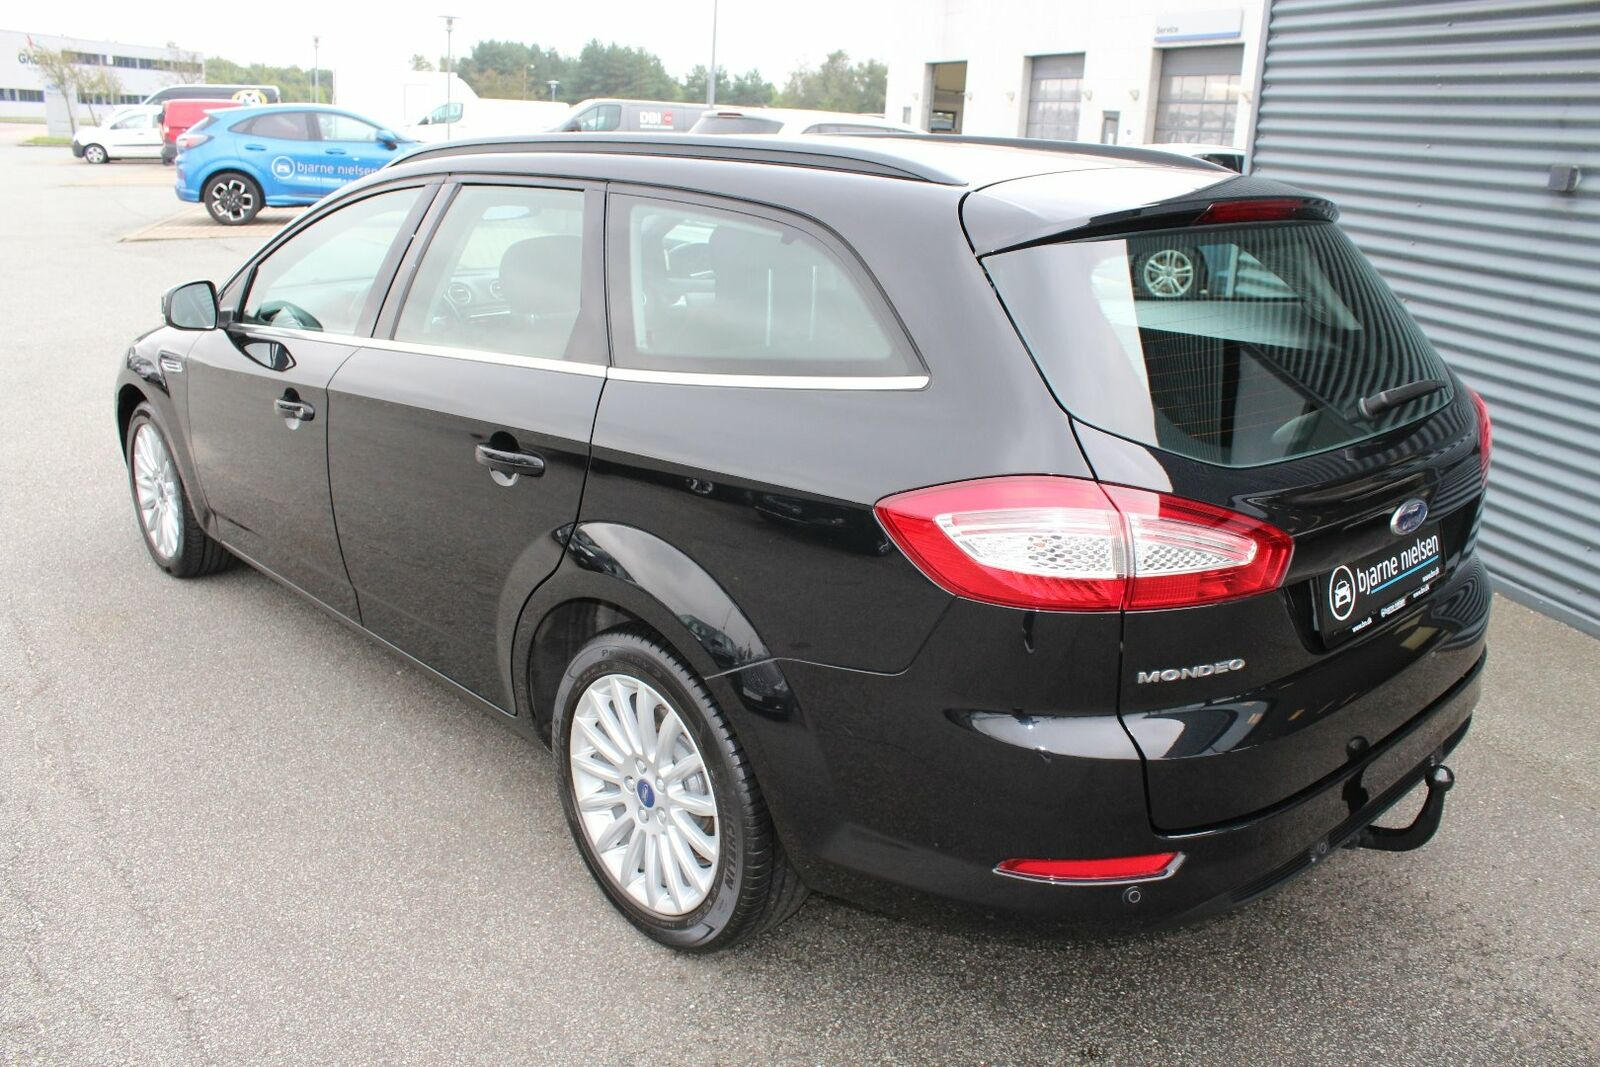 Ford Mondeo 2,0 TDCi 140 Collection stc. aut - billede 4